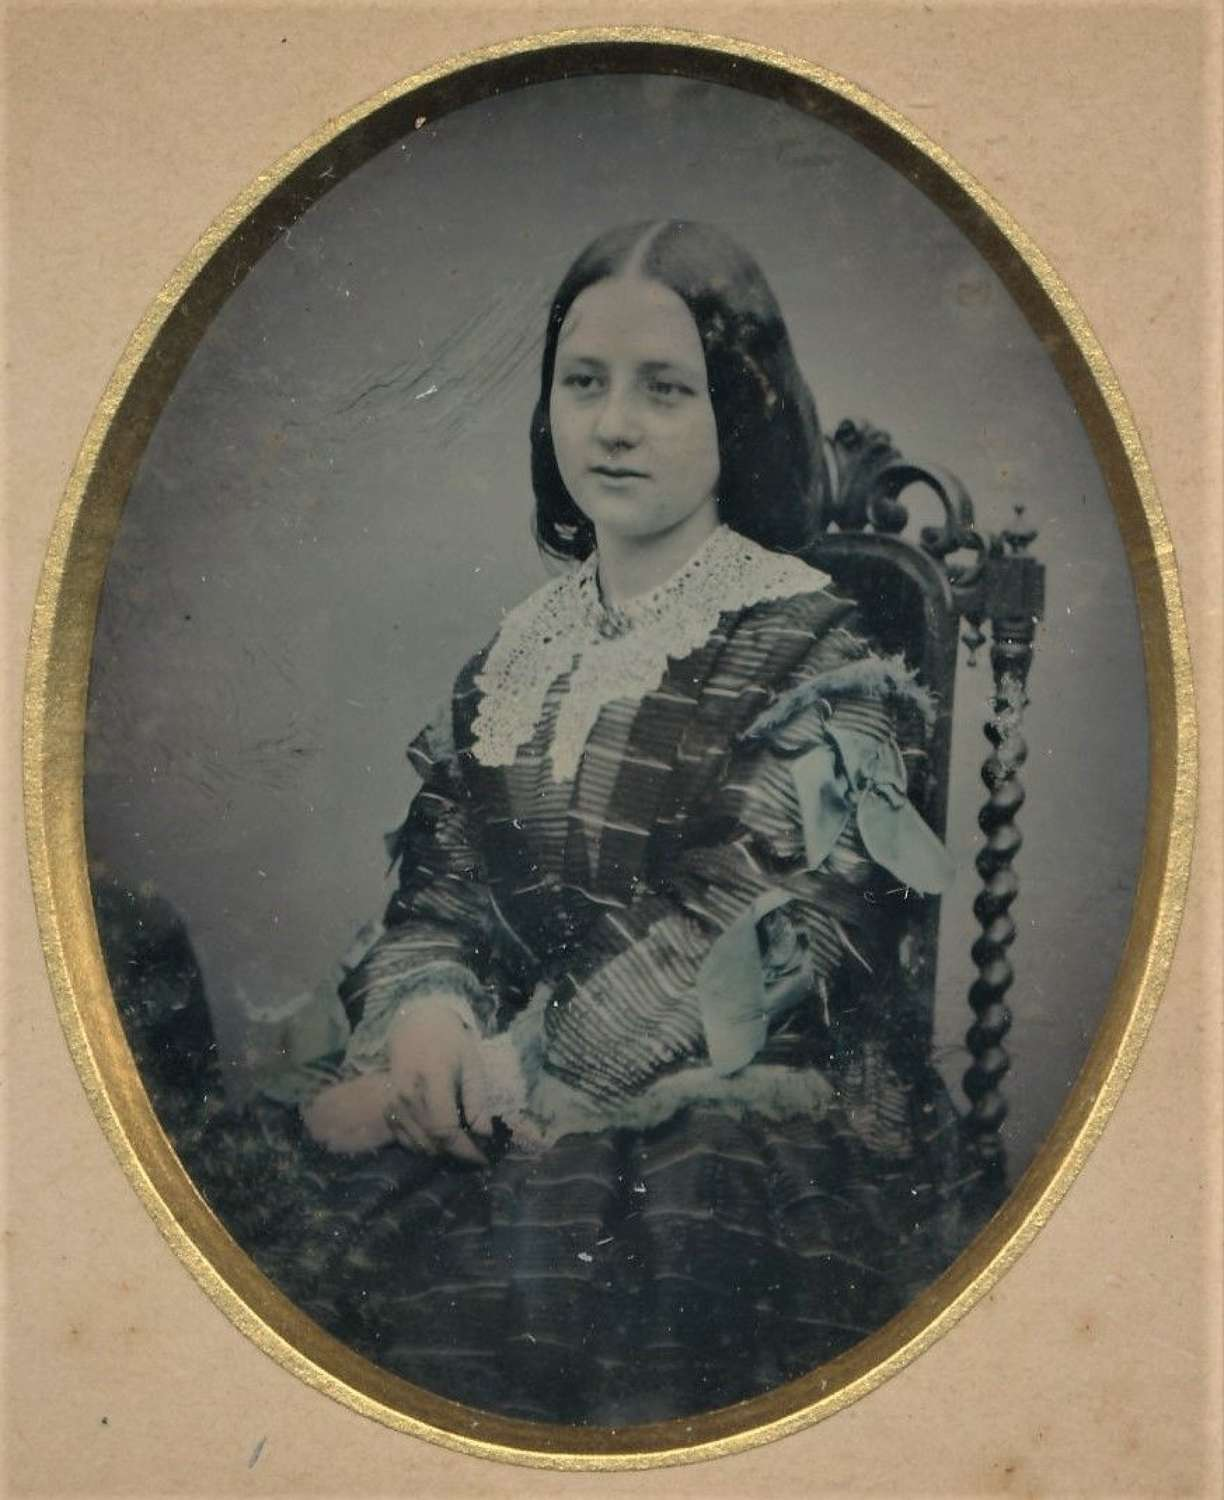 1/9 plate Hand TintedAmbrotype of A Beautiful Young GirlC1865